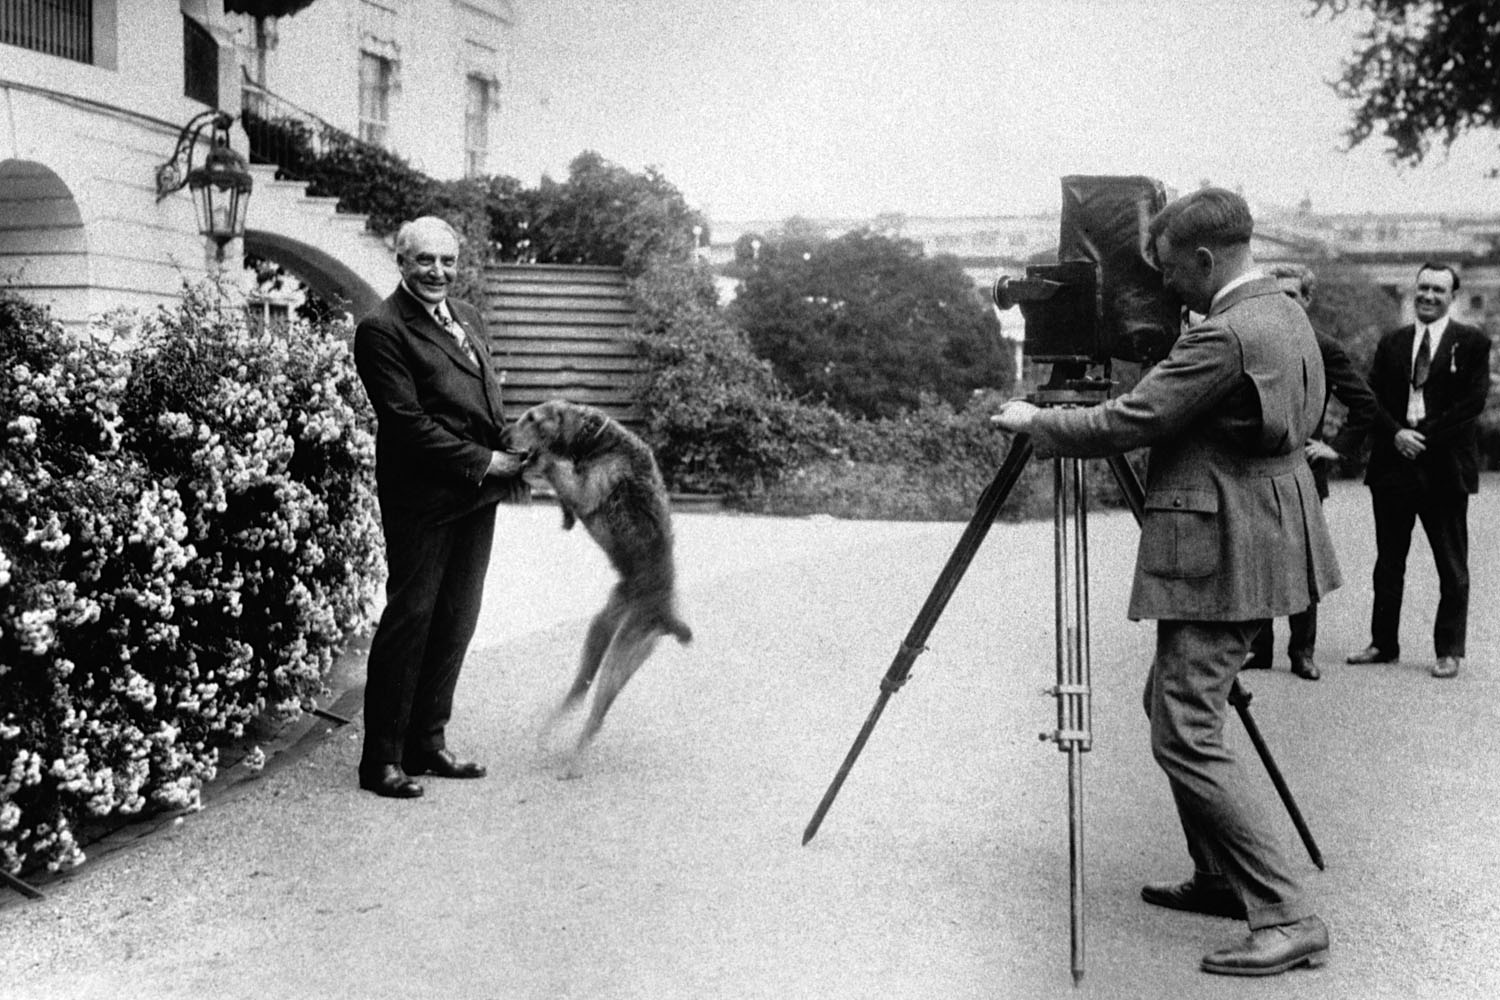 President Warren G. Harding plays with his dog Laddie in front of the White House, June 13, 1922.